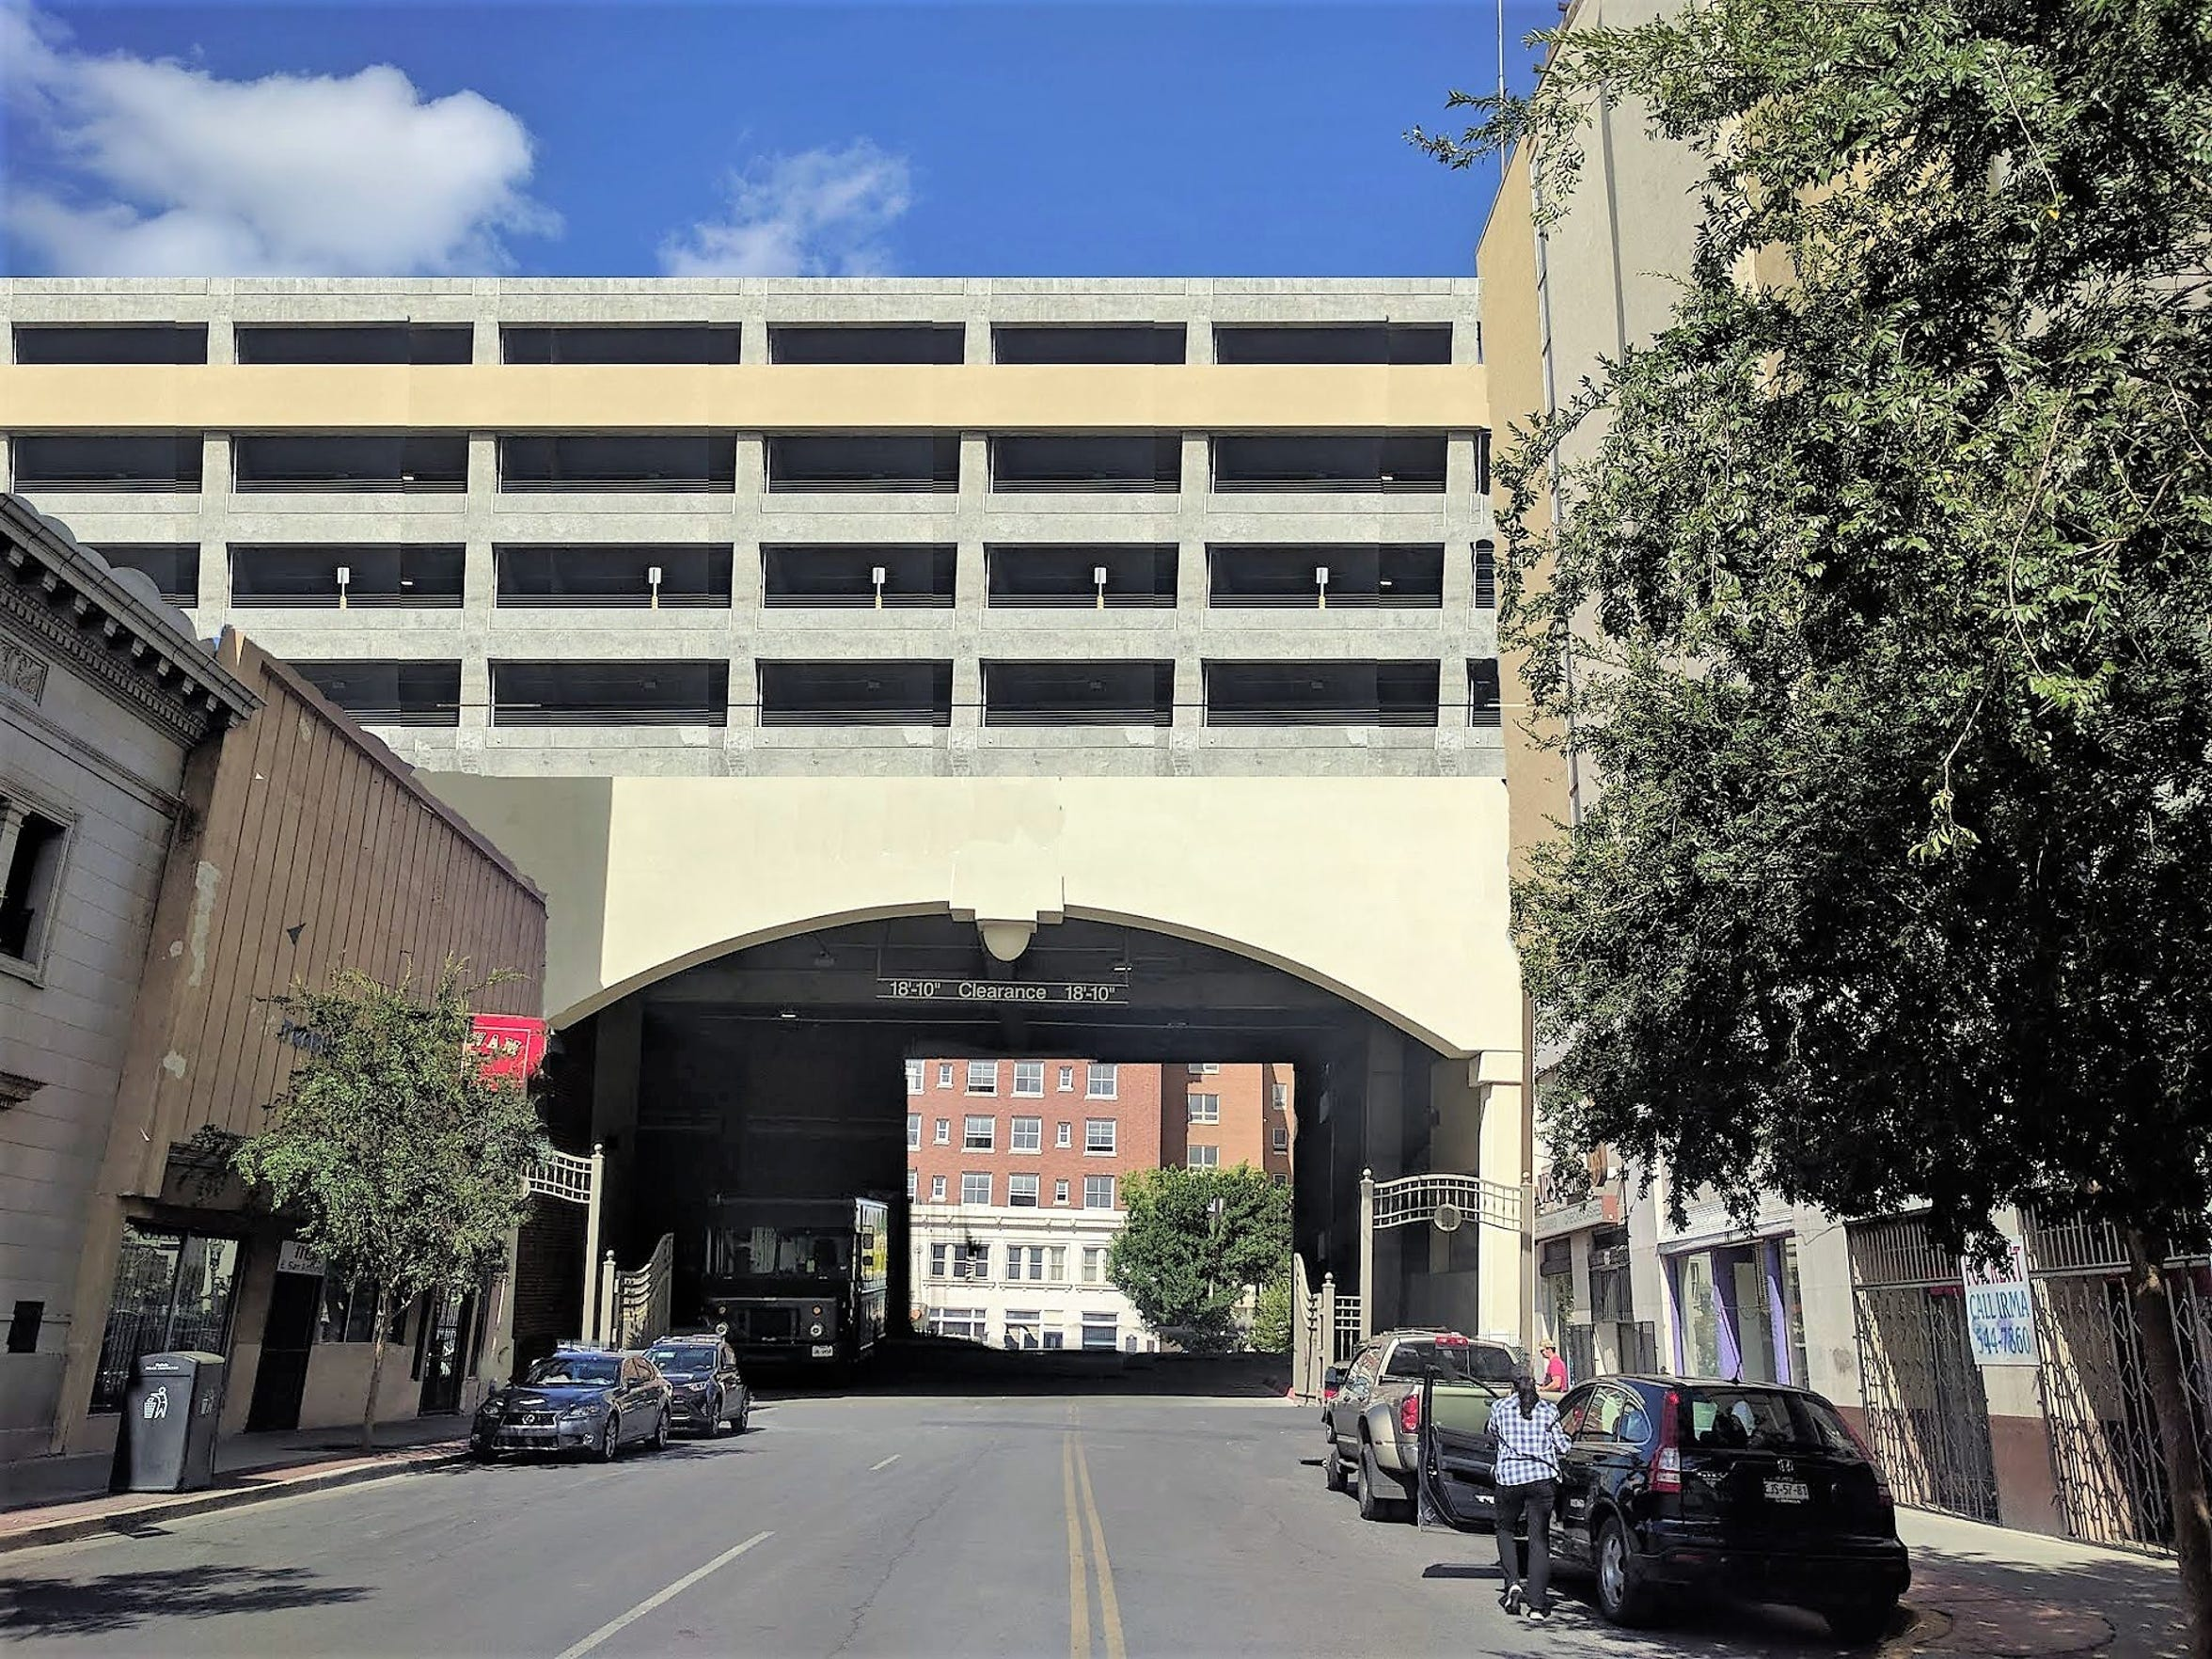 This simulation gives a rough idea of how a parking garage would obstruct a view of the Hotel Paso Del Norte looking down San Antonio Avenue. This was produced for architectural historian Max Grossman, who is lamenting losing the historic view.